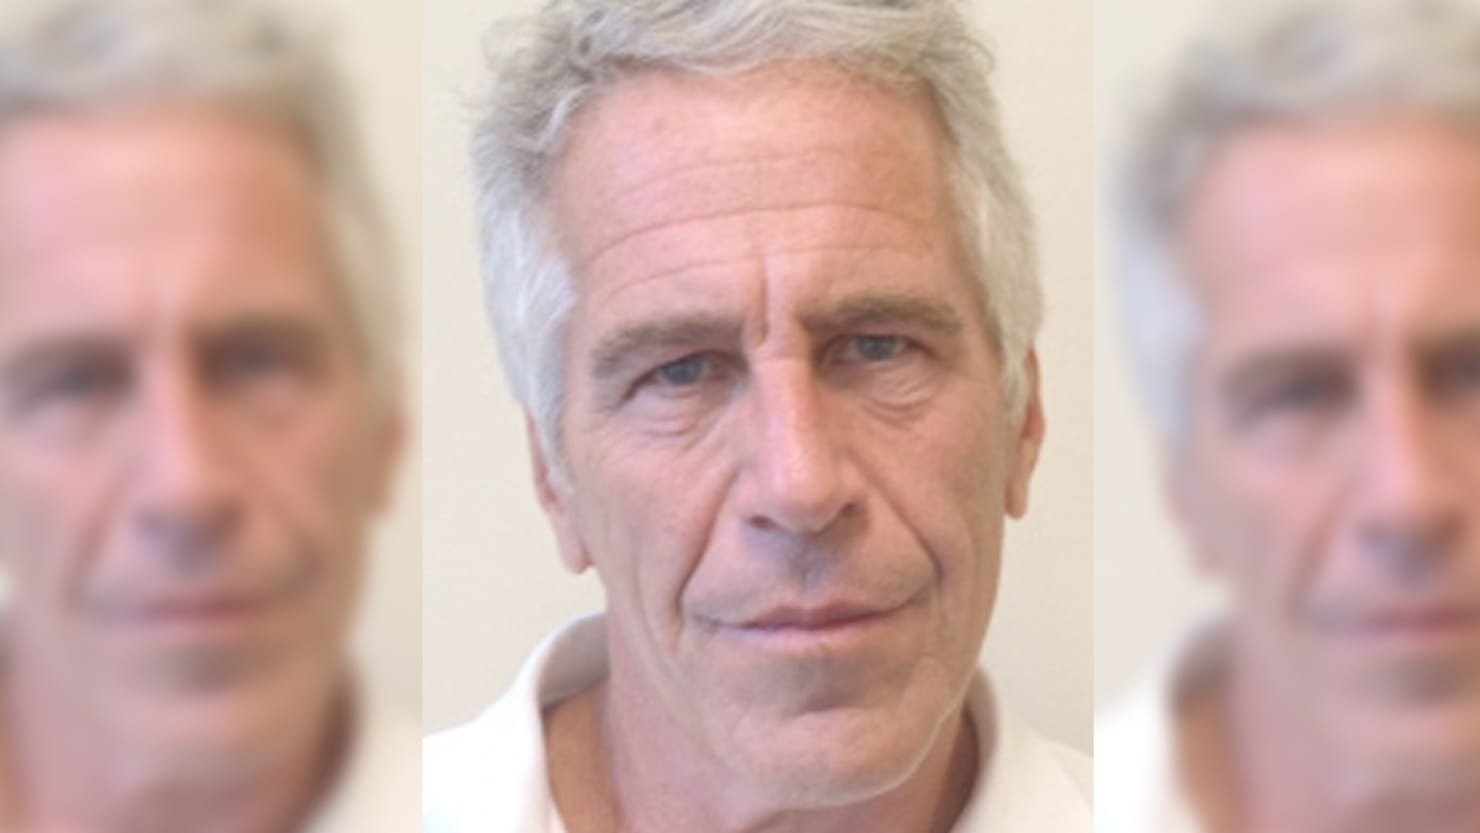 'His Weapons Were His Hands': California Model Says Epstein Posed as Victoria's Secret Scout to Grope Her – The Daily Beast